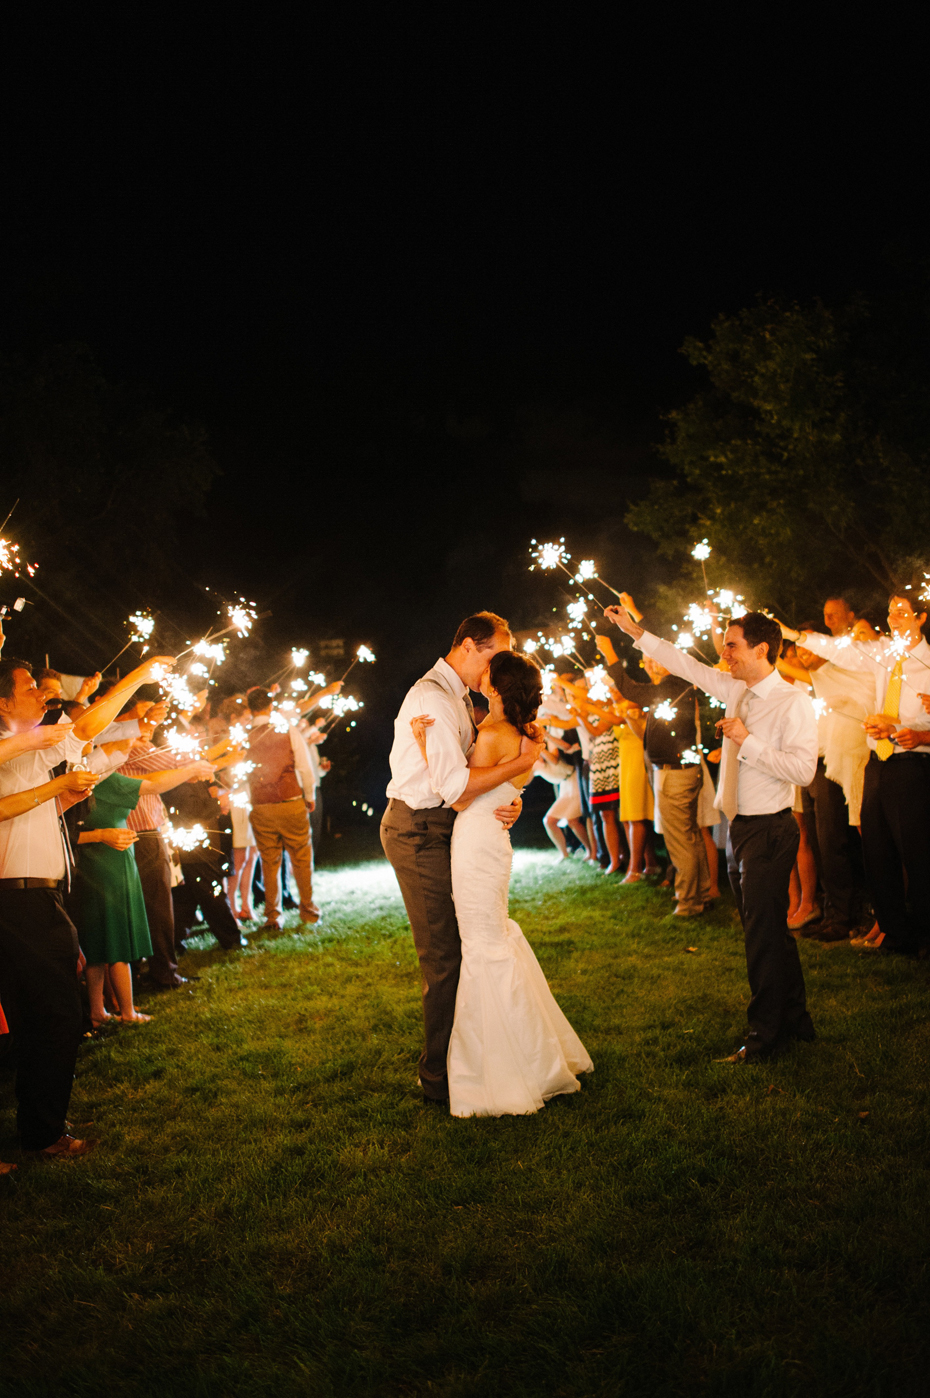 The bride and groom share one more kiss and then exit their wedding reception while guests hold sparklers at a backyard wedding by Bloomfield Hills wedding photographer Heather Jowett.